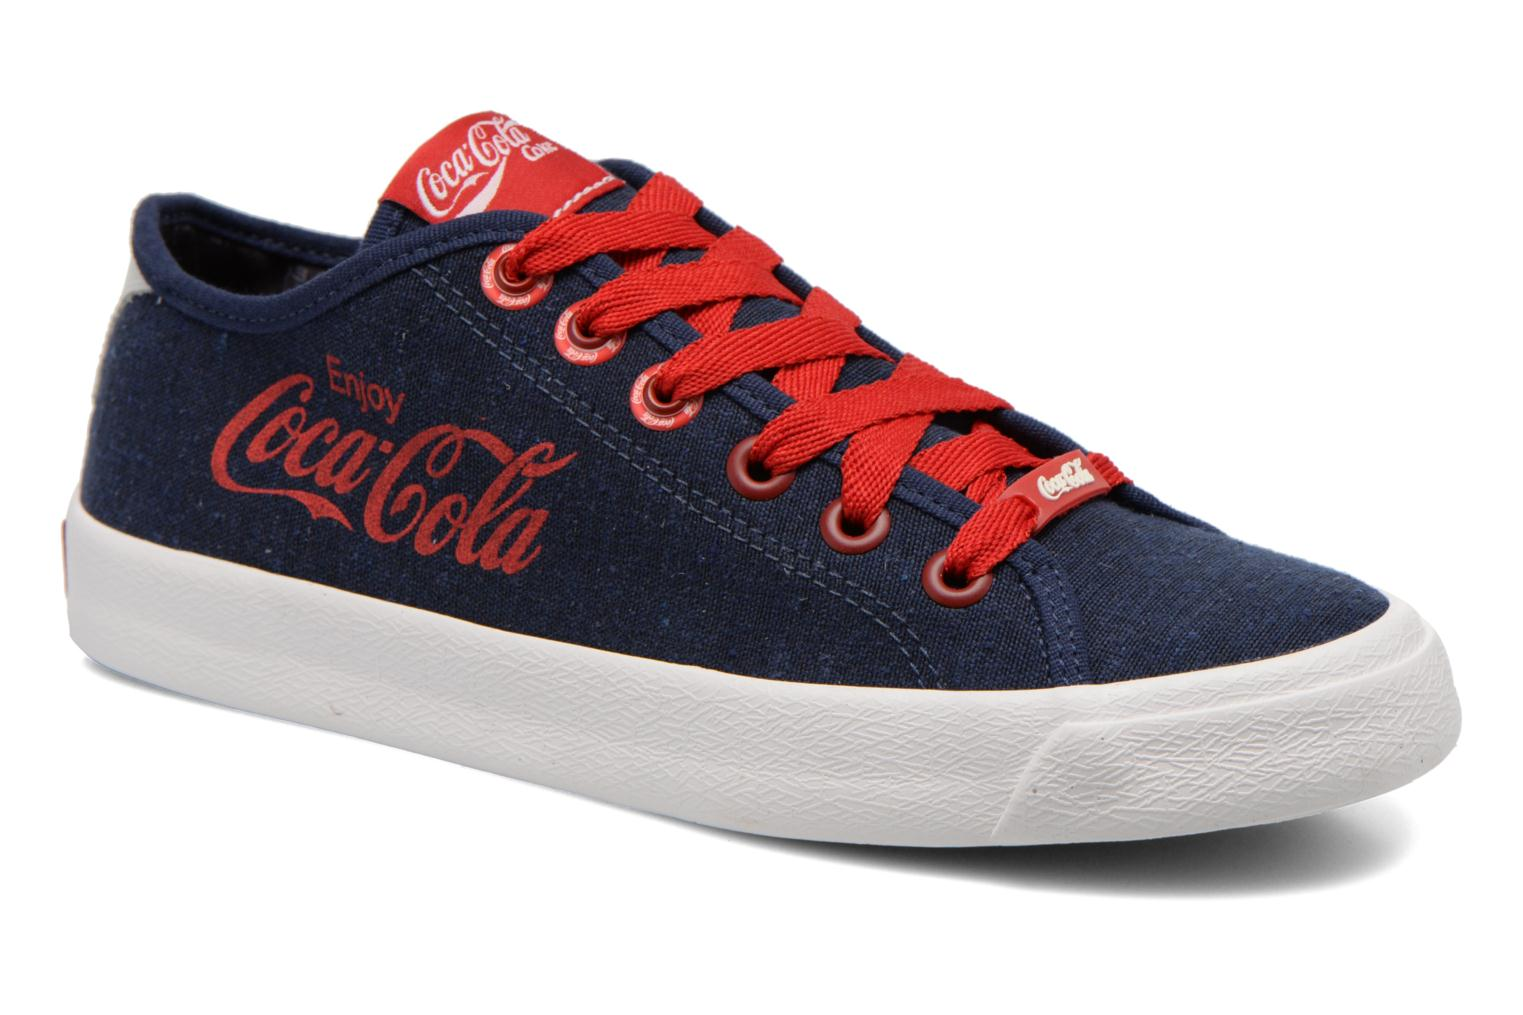 Sneakers Coca-cola shoes Blauw